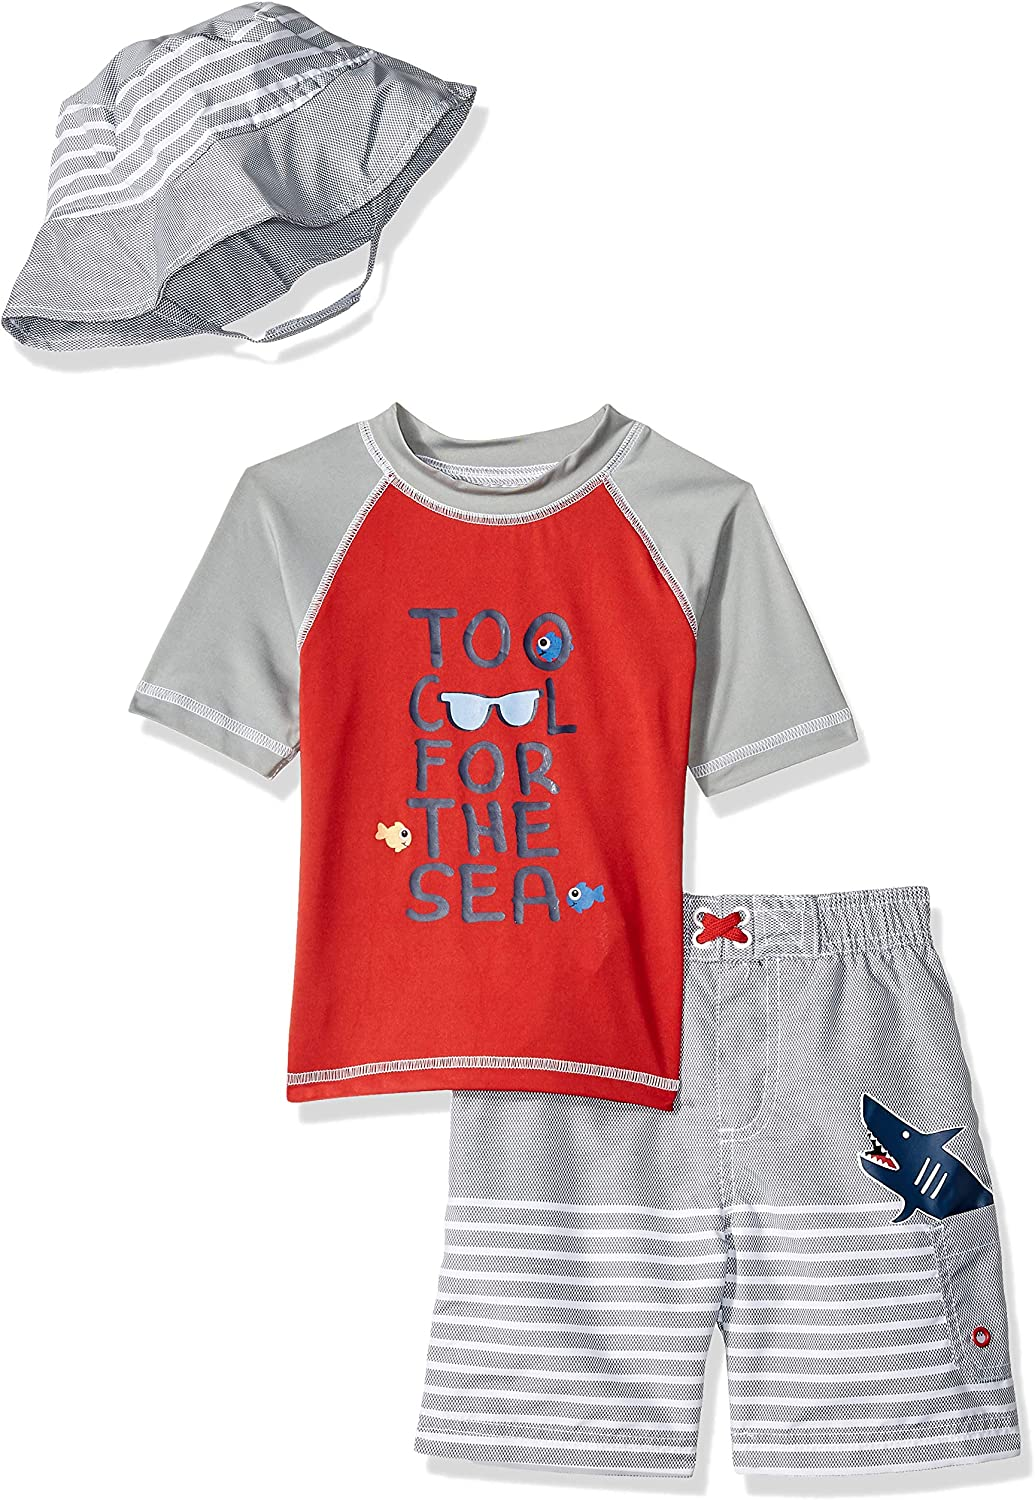 Wippette Boys Toddler Short Sleeve Rashguard Set with Hat